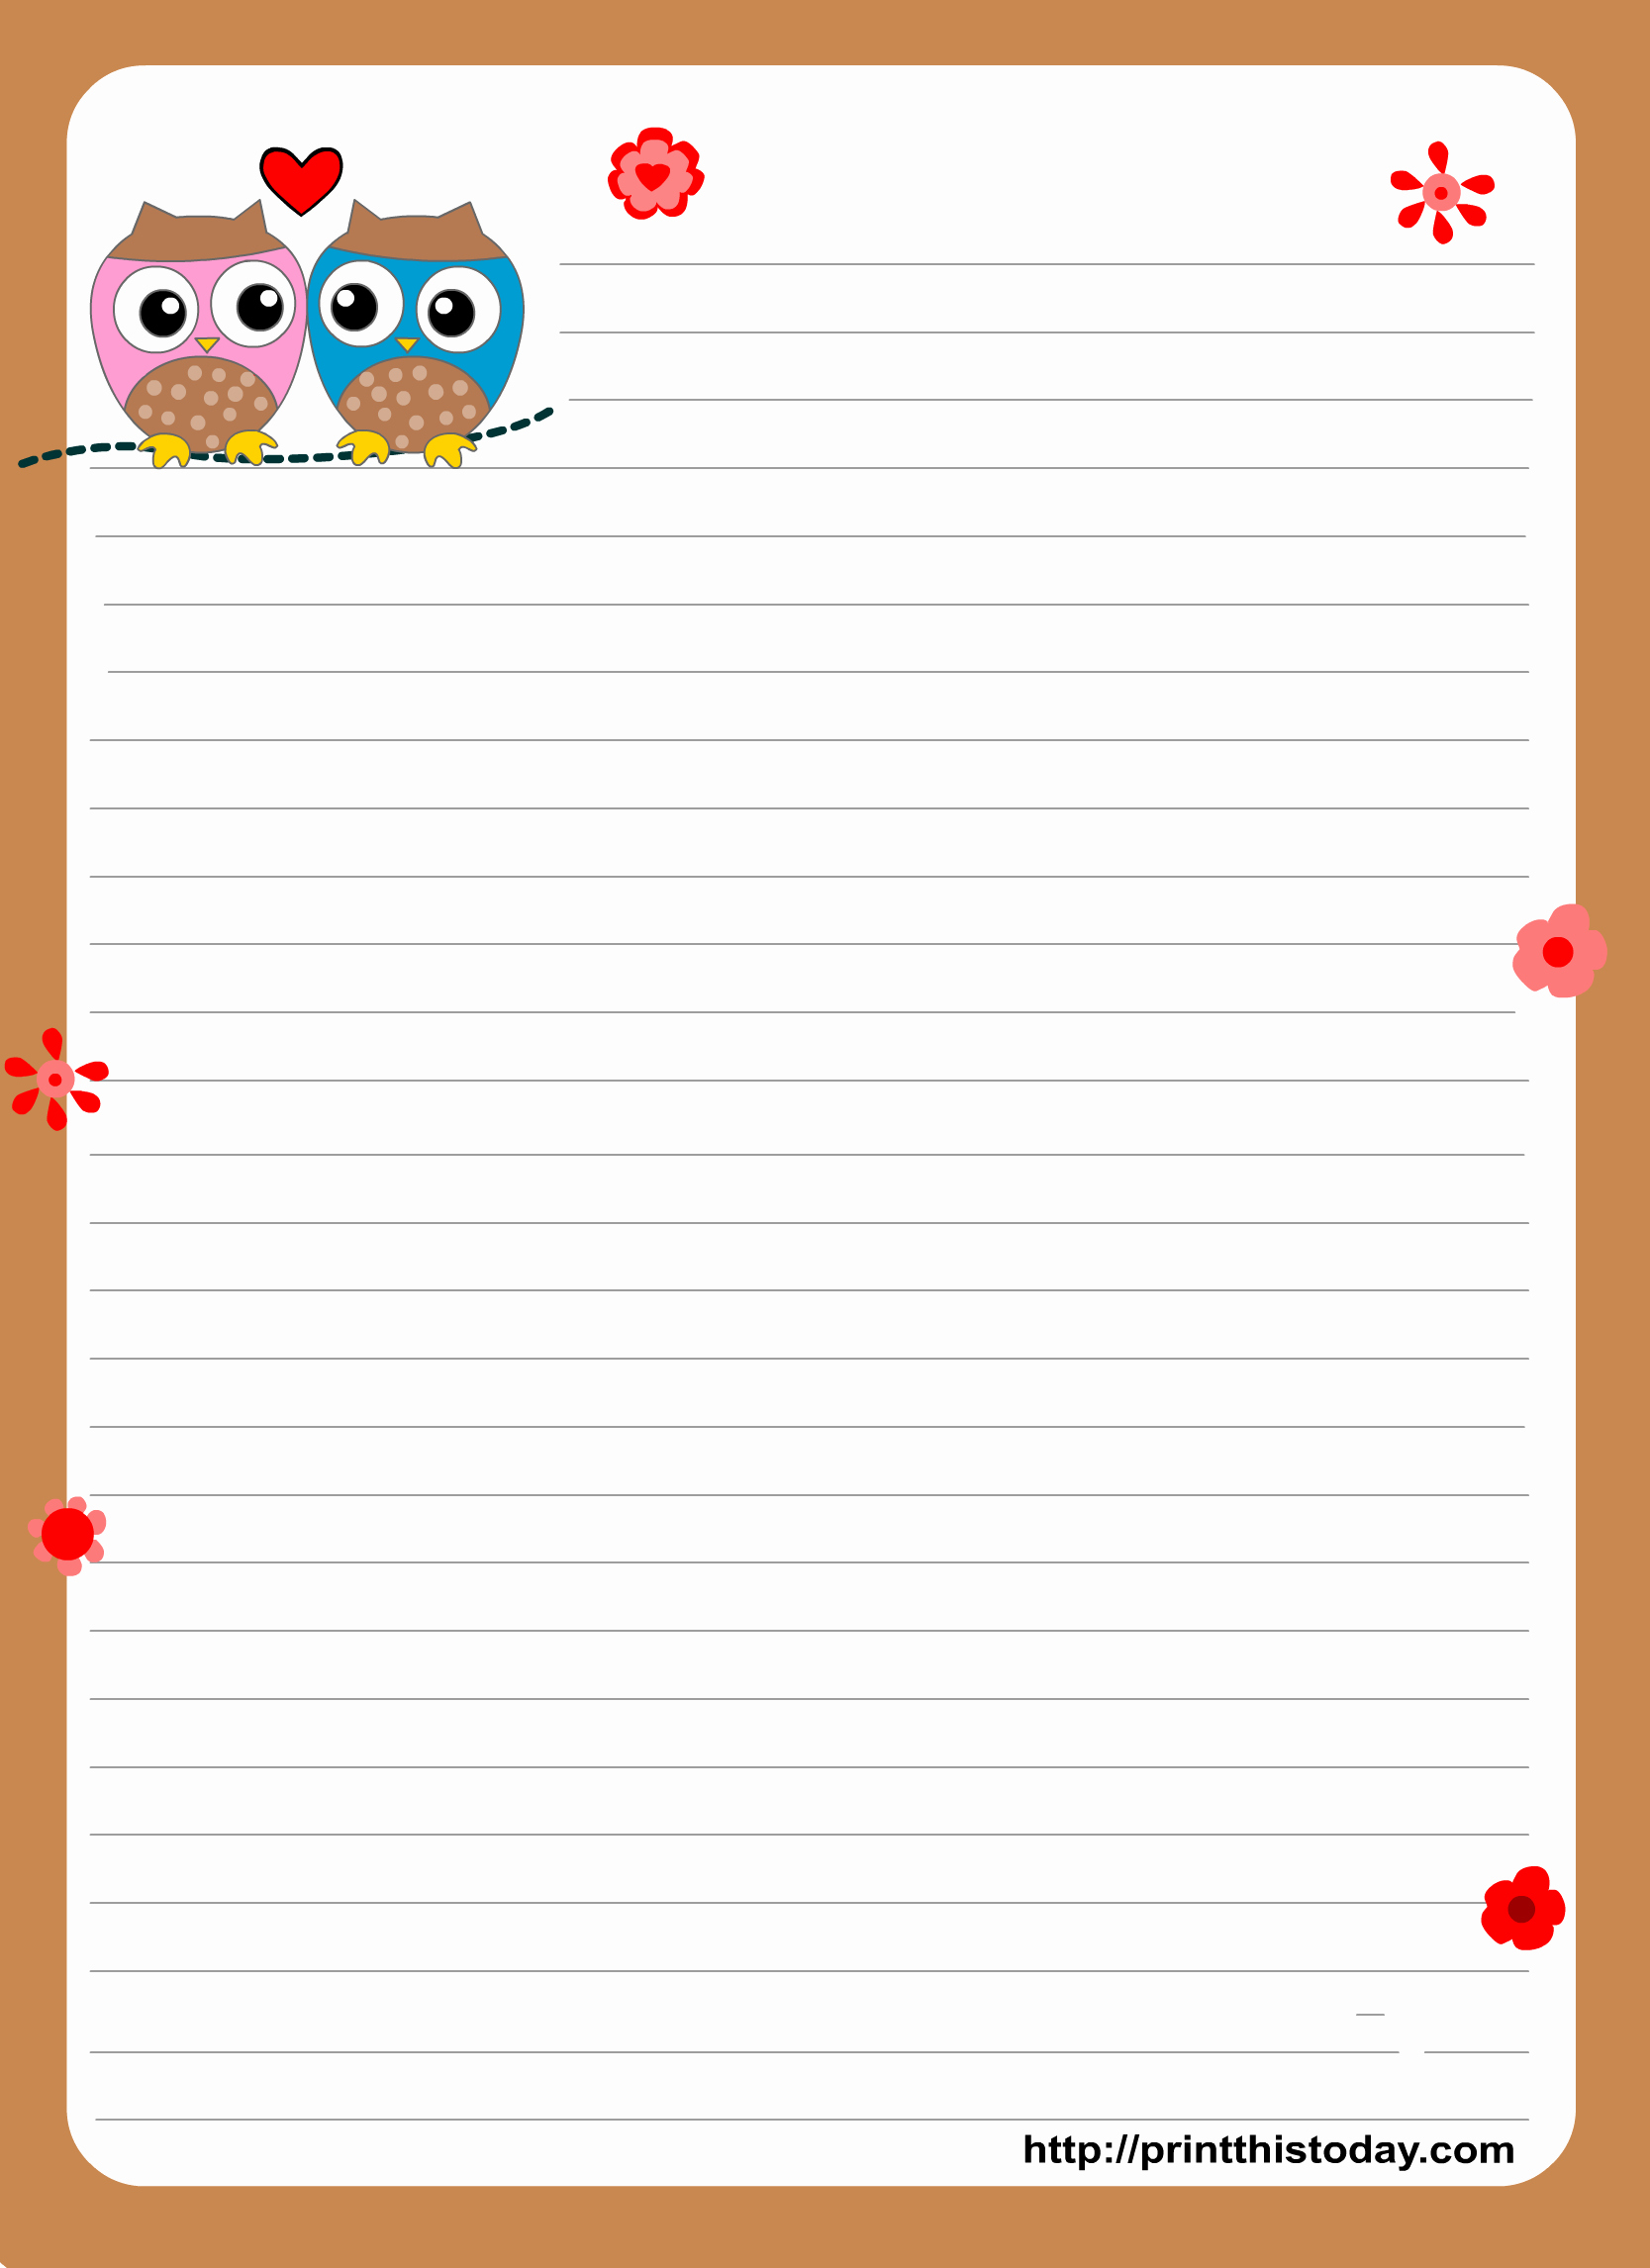 Free Printable Stationery Pdf New 1000 Images About Free Printable Stationary On Pinterest